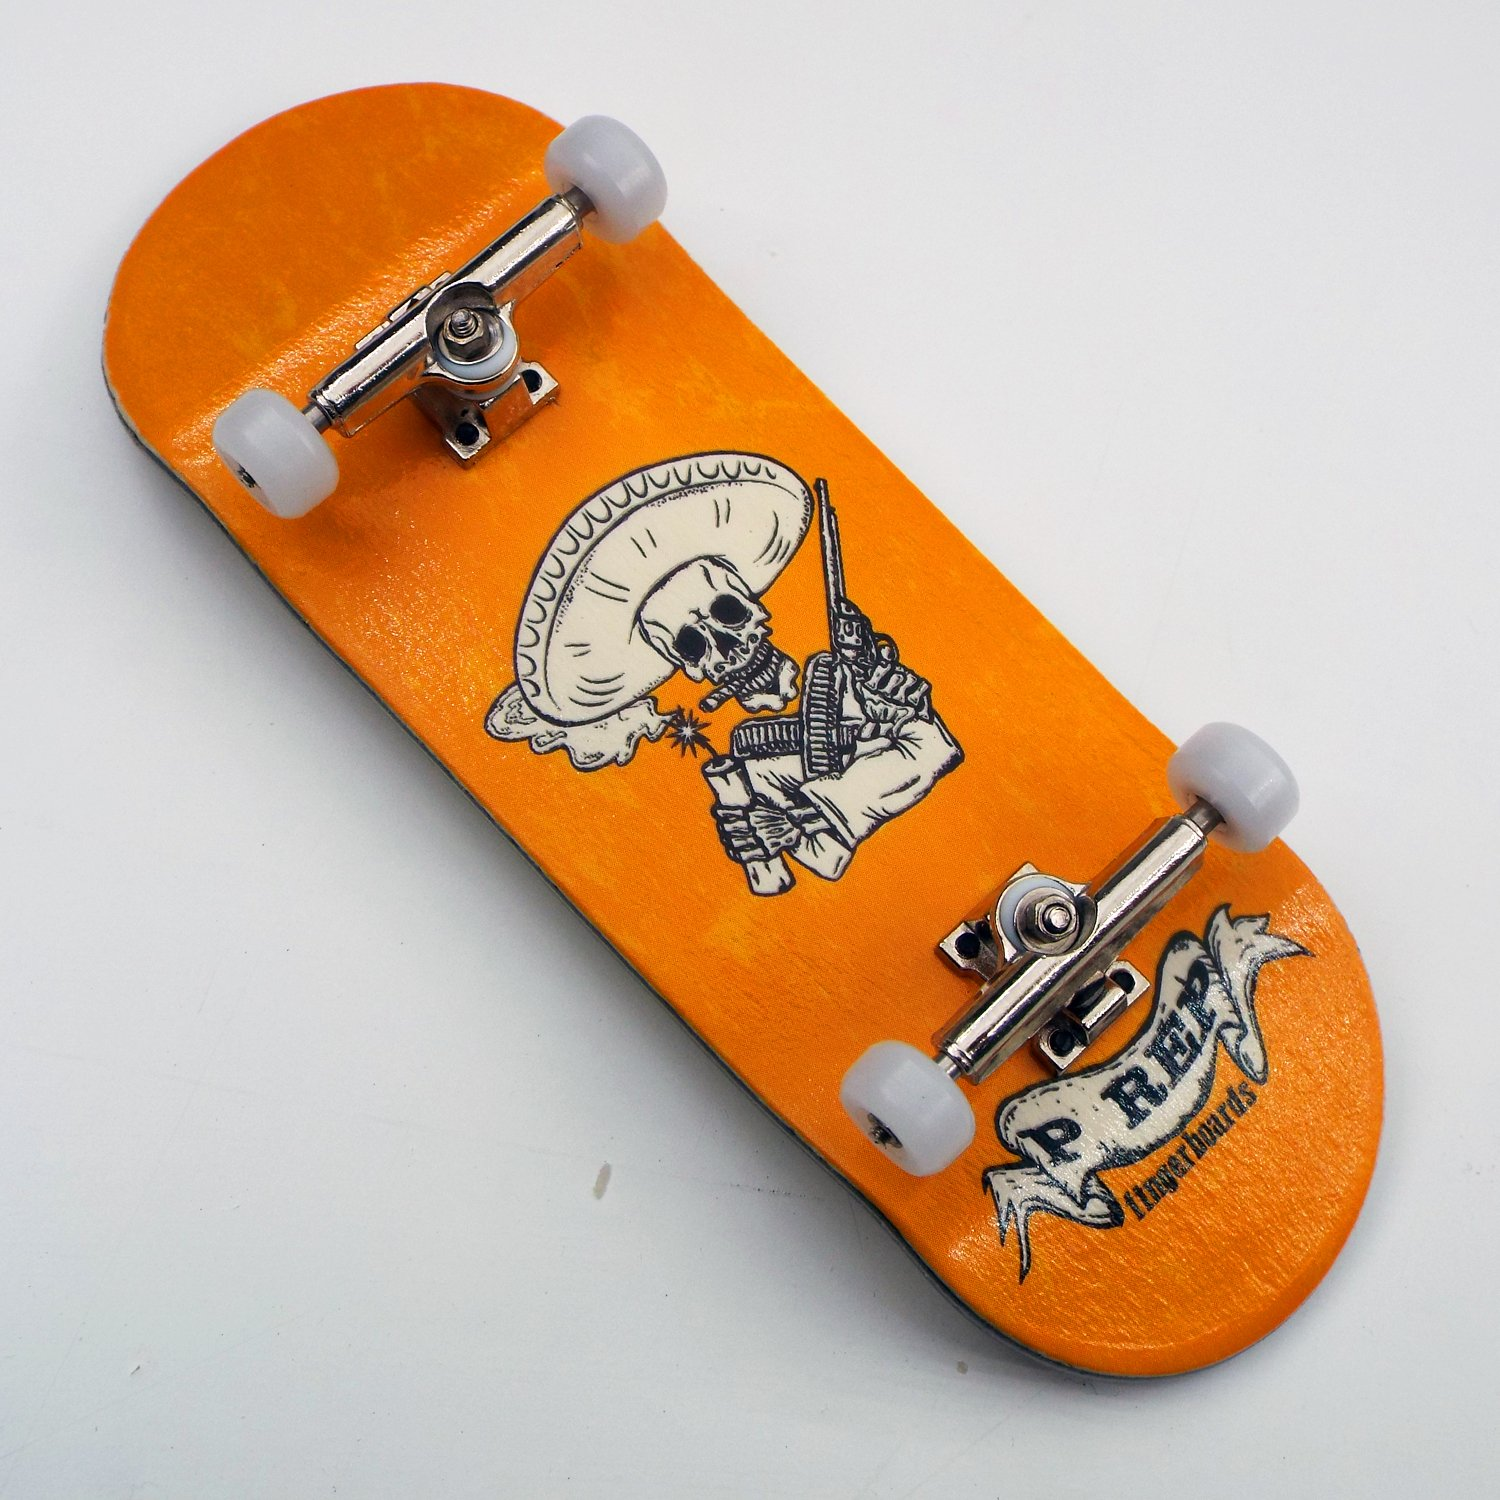 P-REP TUNED Complete Wooden Fingerboard 34mm x 100mm - Bandito by Peoples Republic (Image #2)